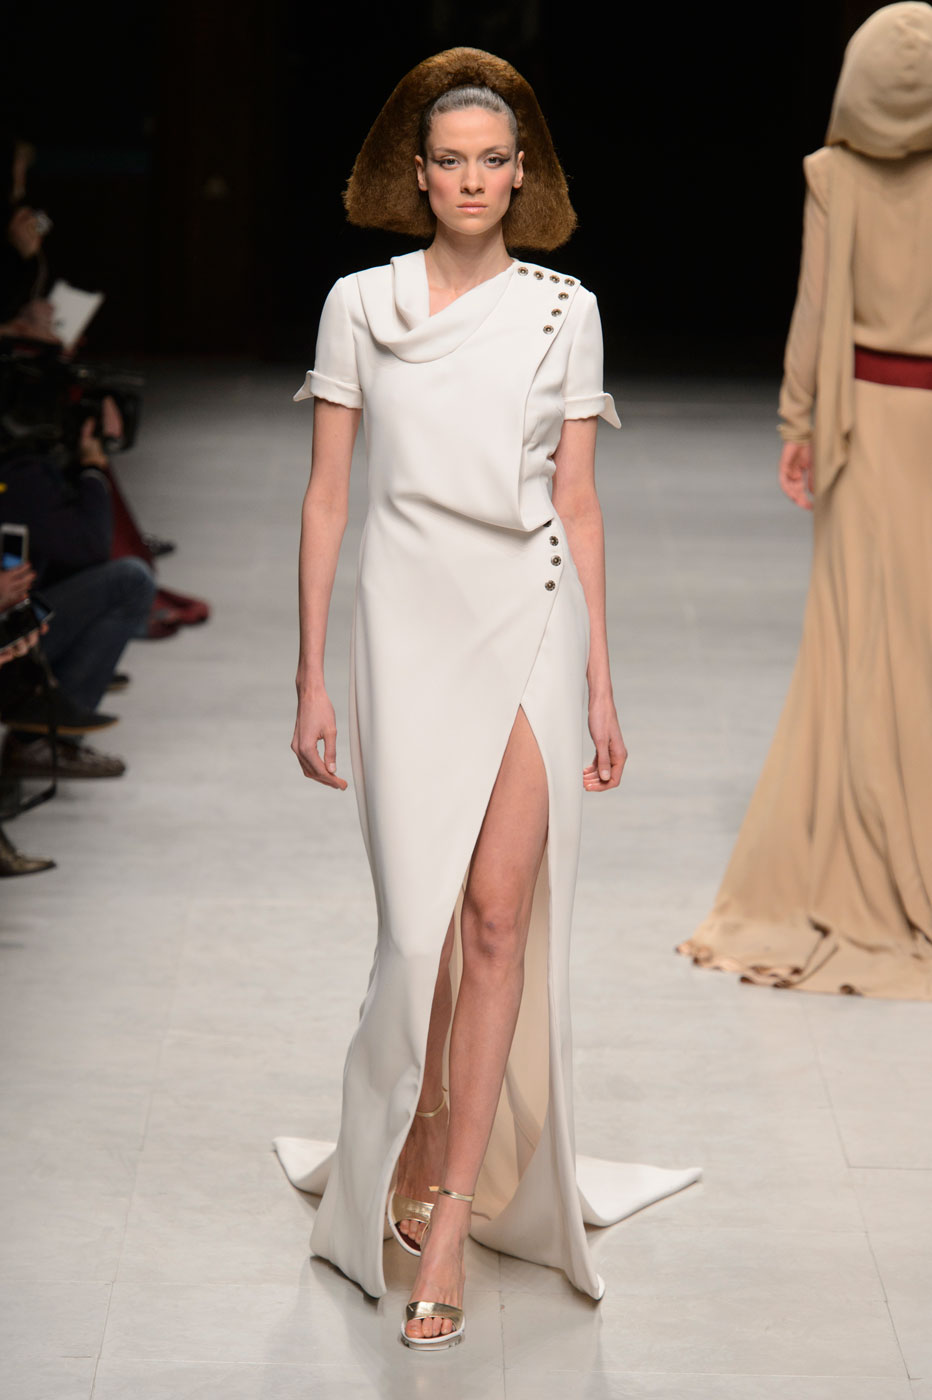 Julien-Fournie-Prive-fashion-runway-show-haute-couture-paris-spring-2015-the-impression-28